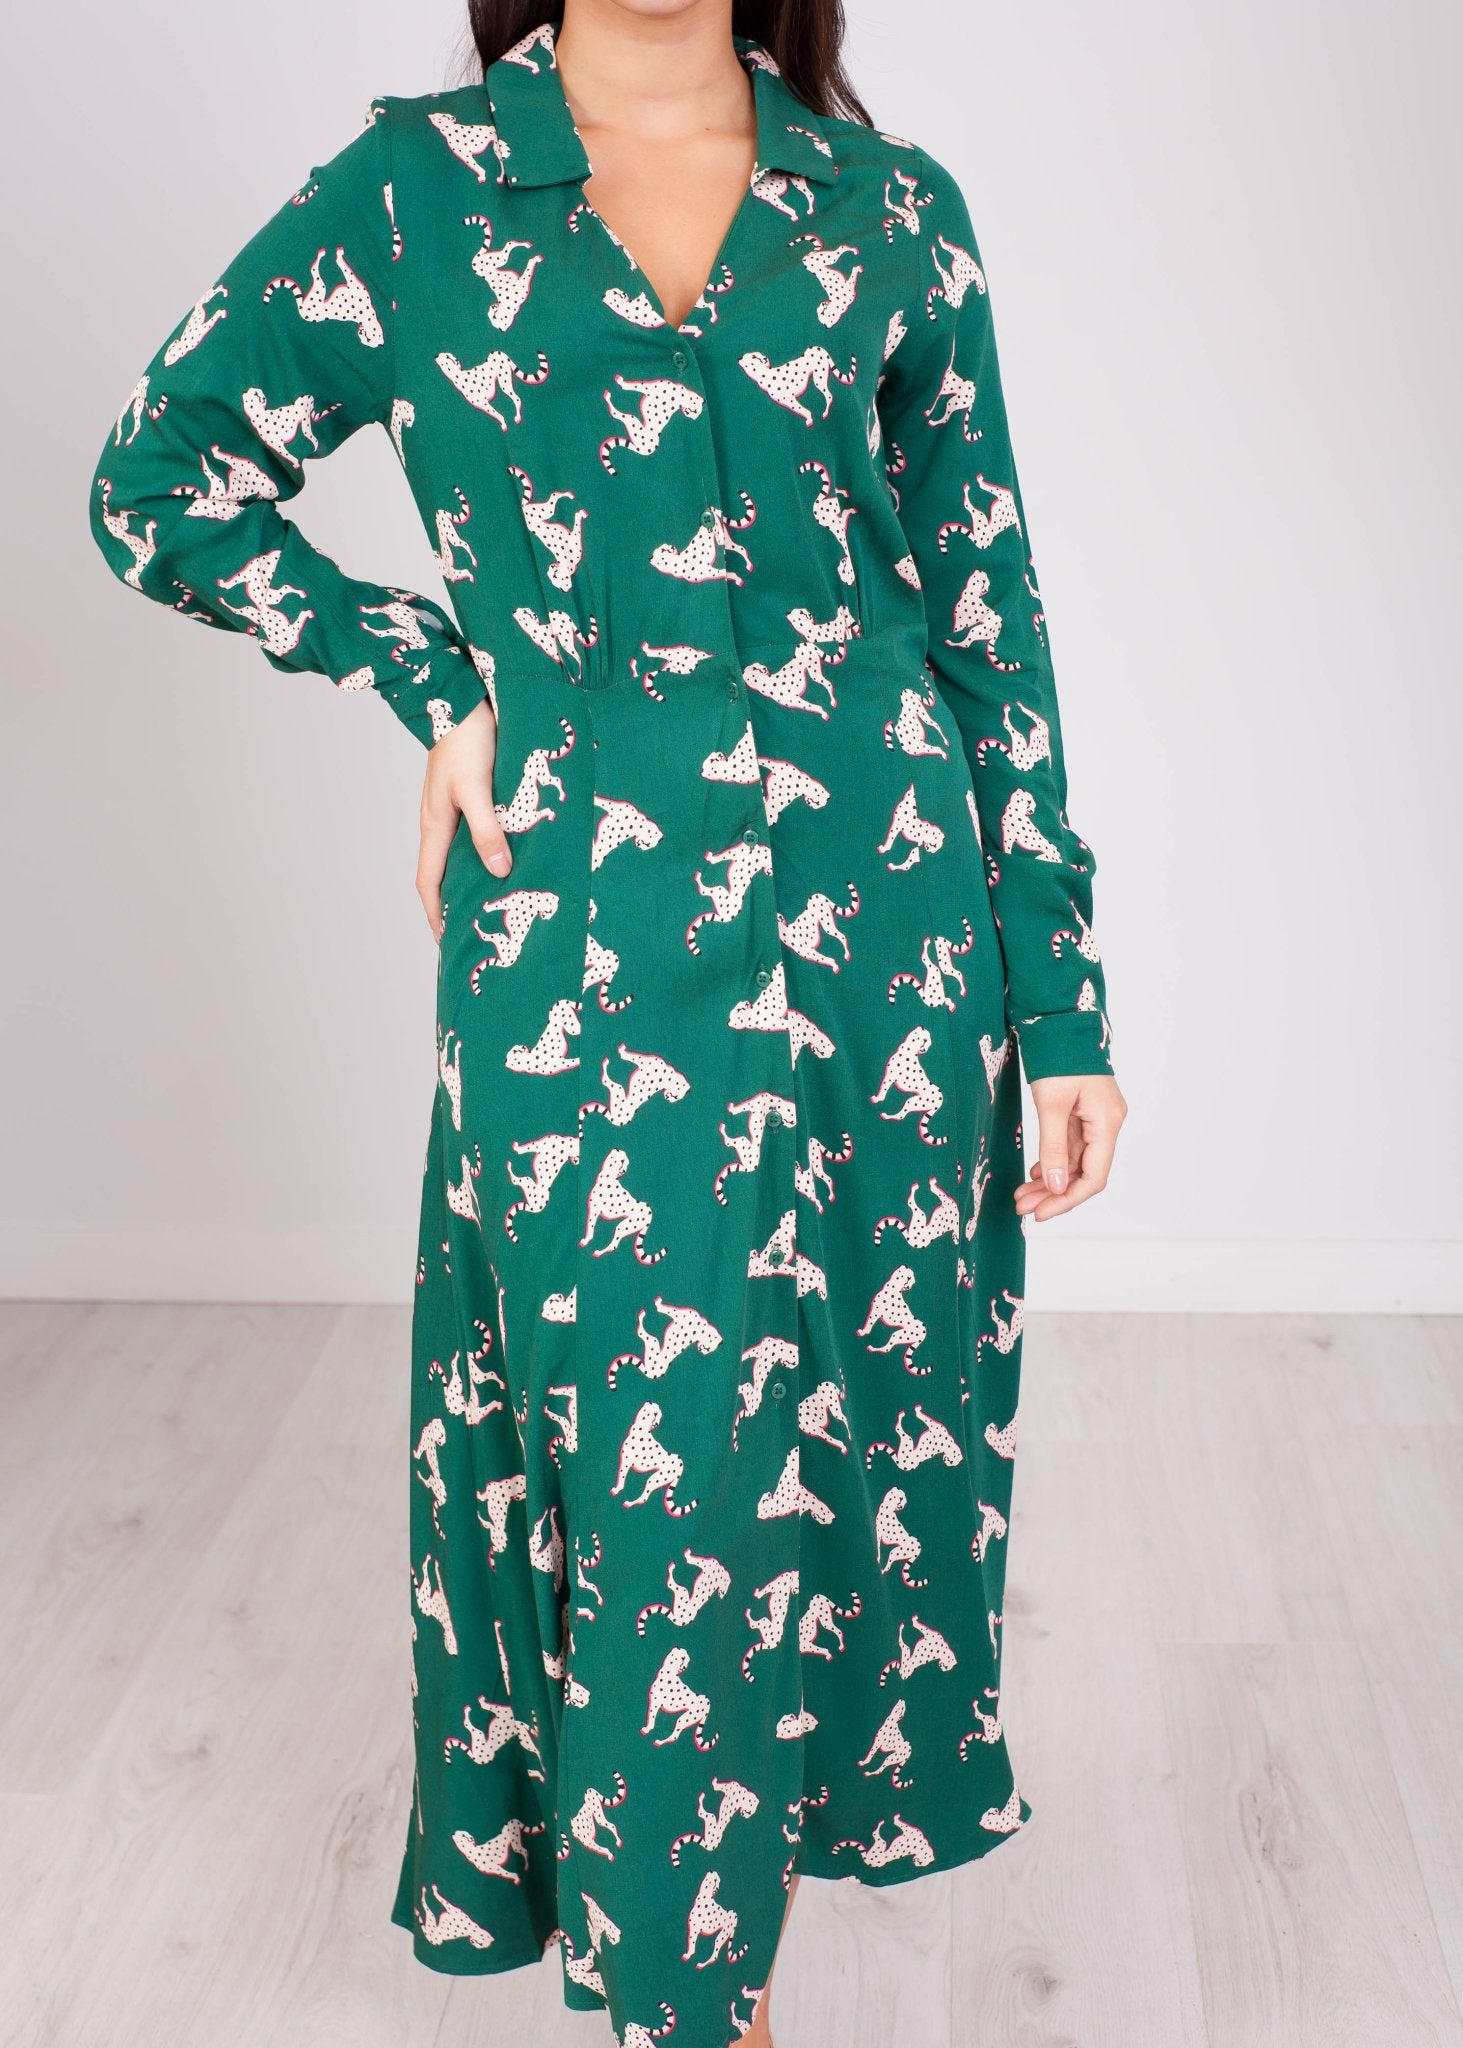 Frankie Green Leopard Dress - The Walk in Wardrobe